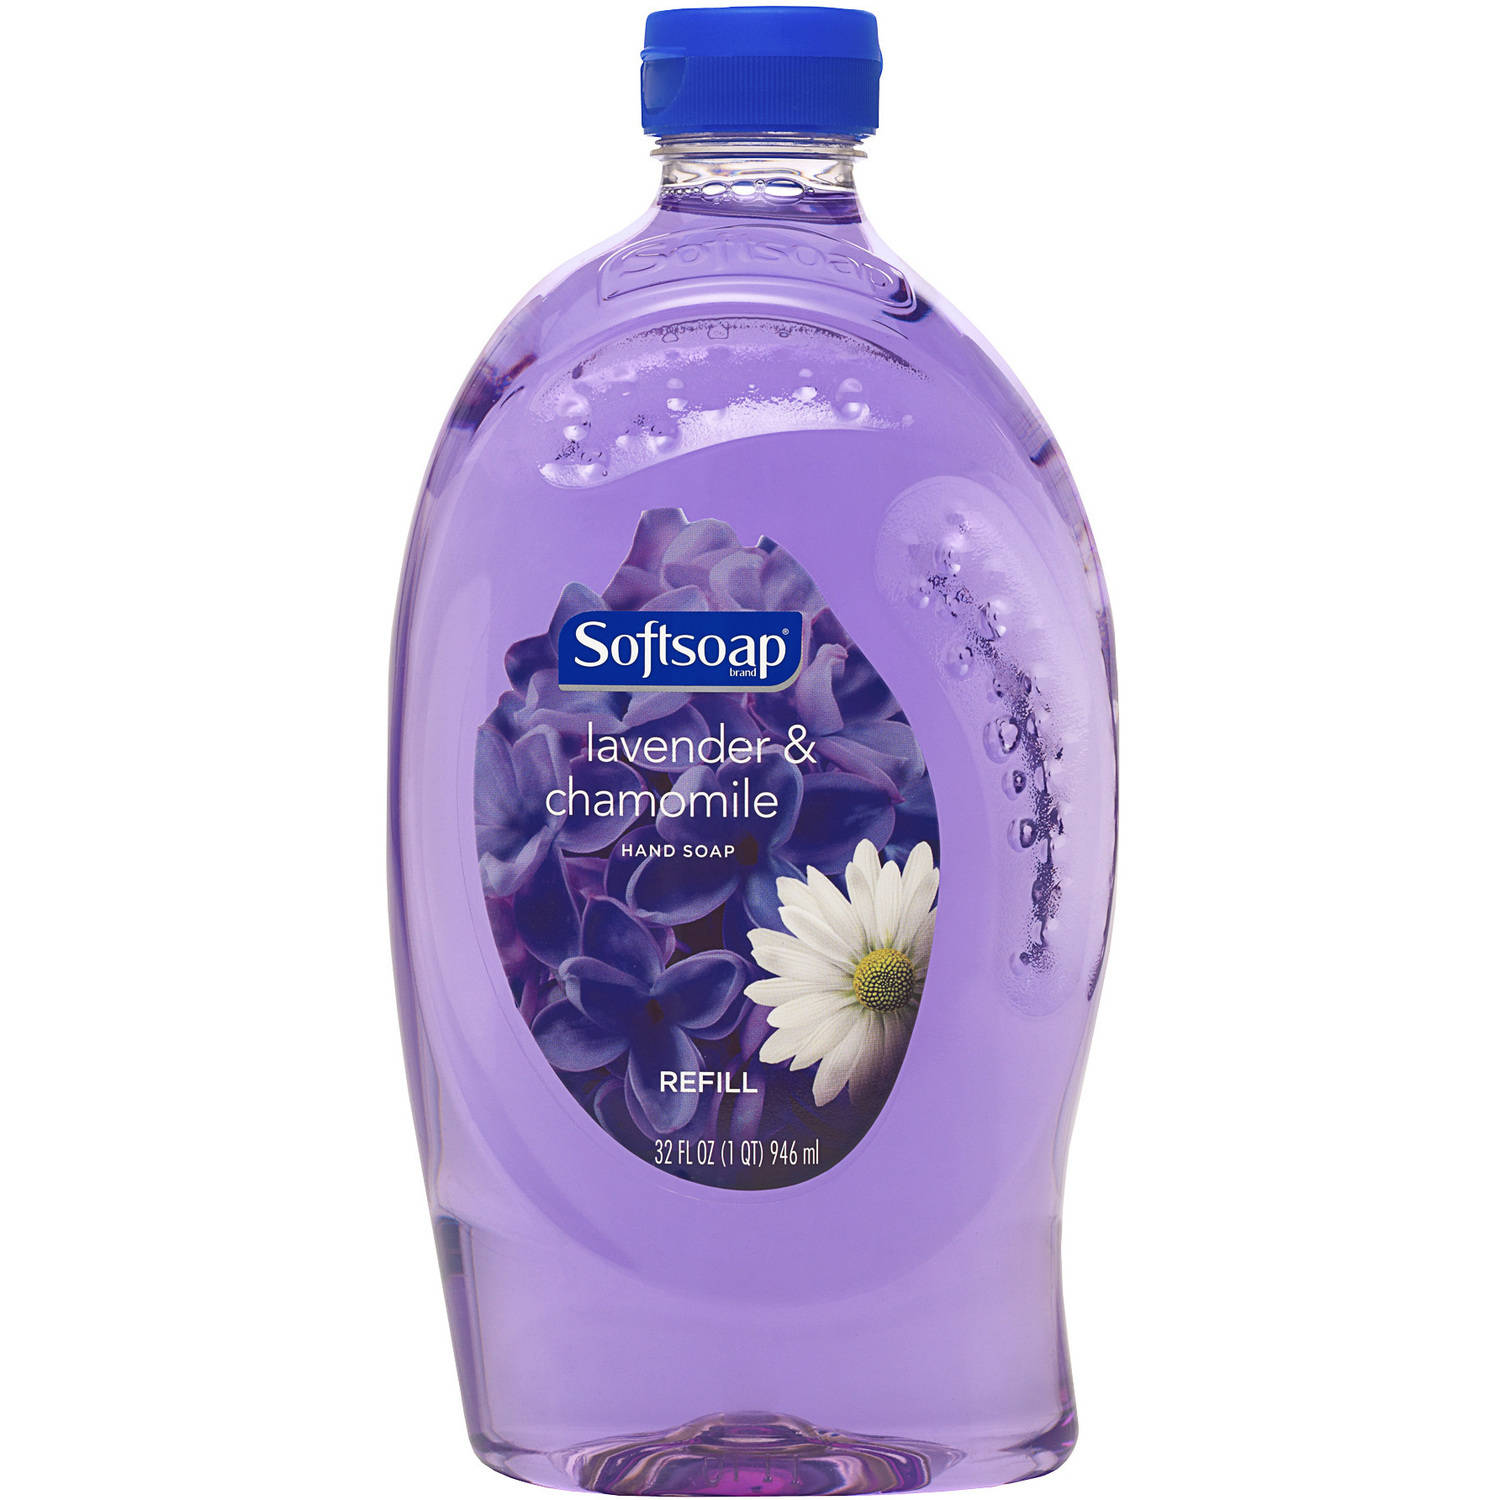 Softsoap Liquid Hand Soap Refill, Lavender and Chamomile, 32 Fluid Ounce